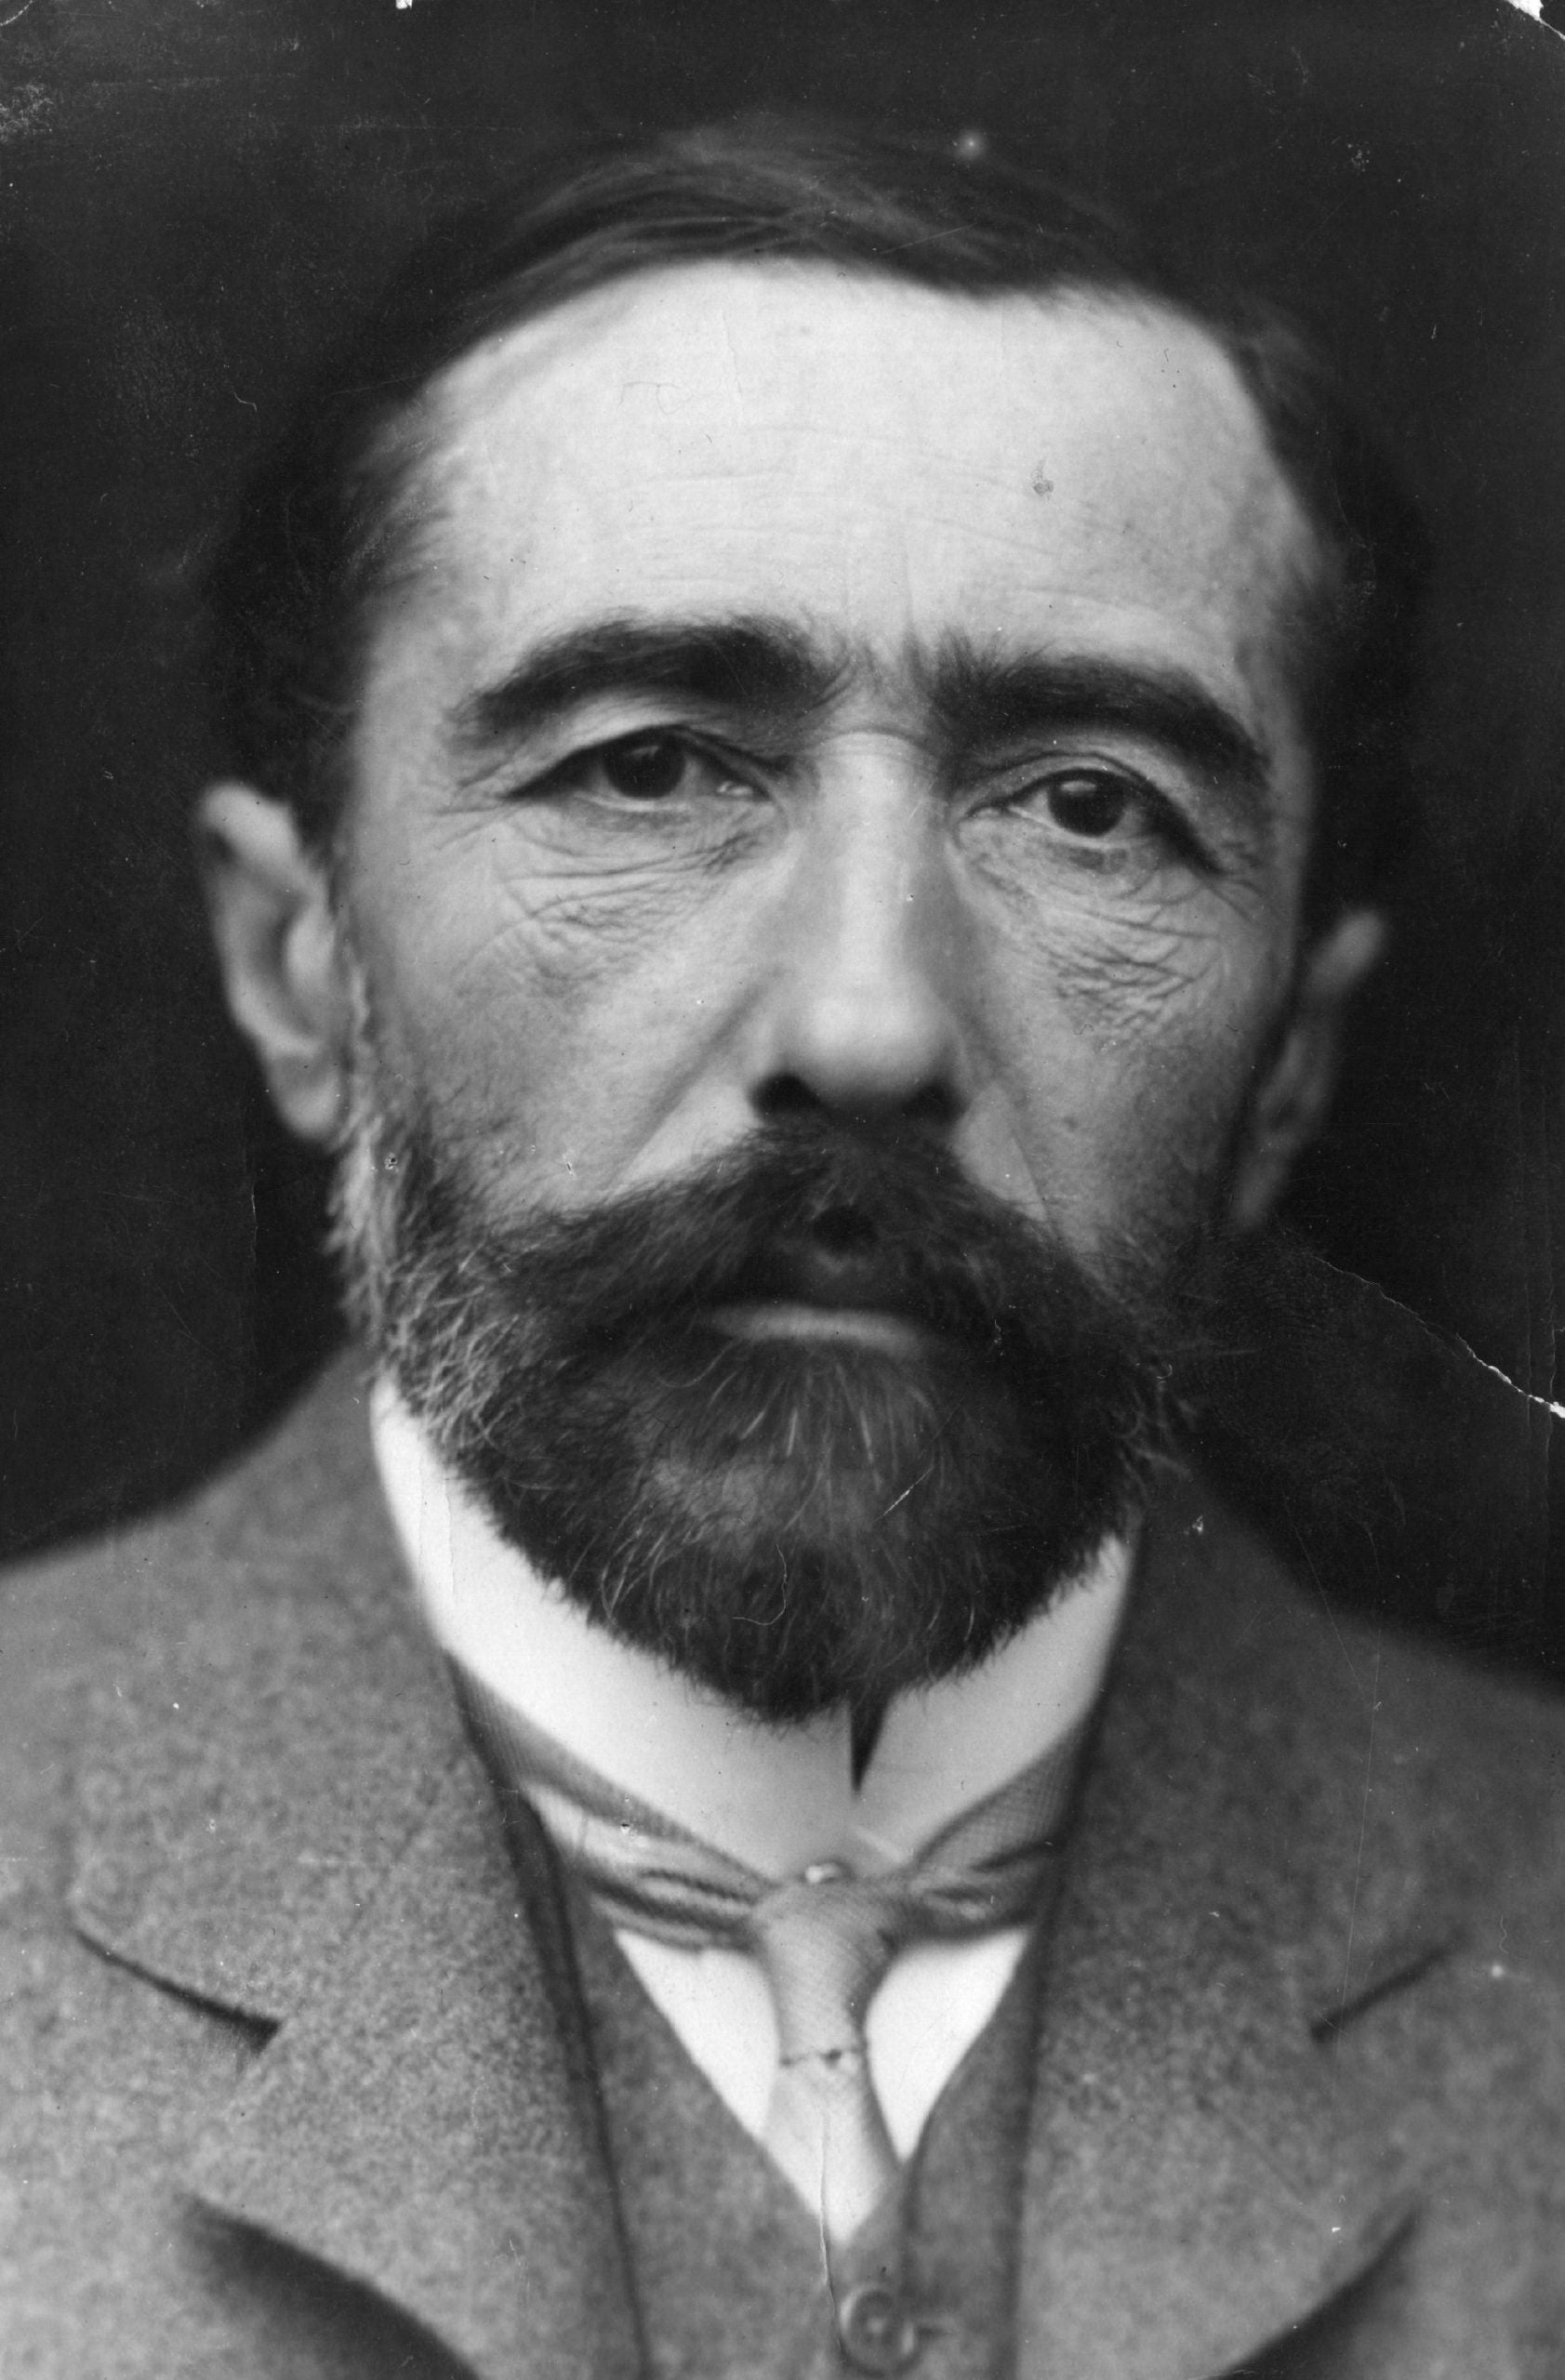 From the NS archive: We must drift: a letter from Joseph Conrad